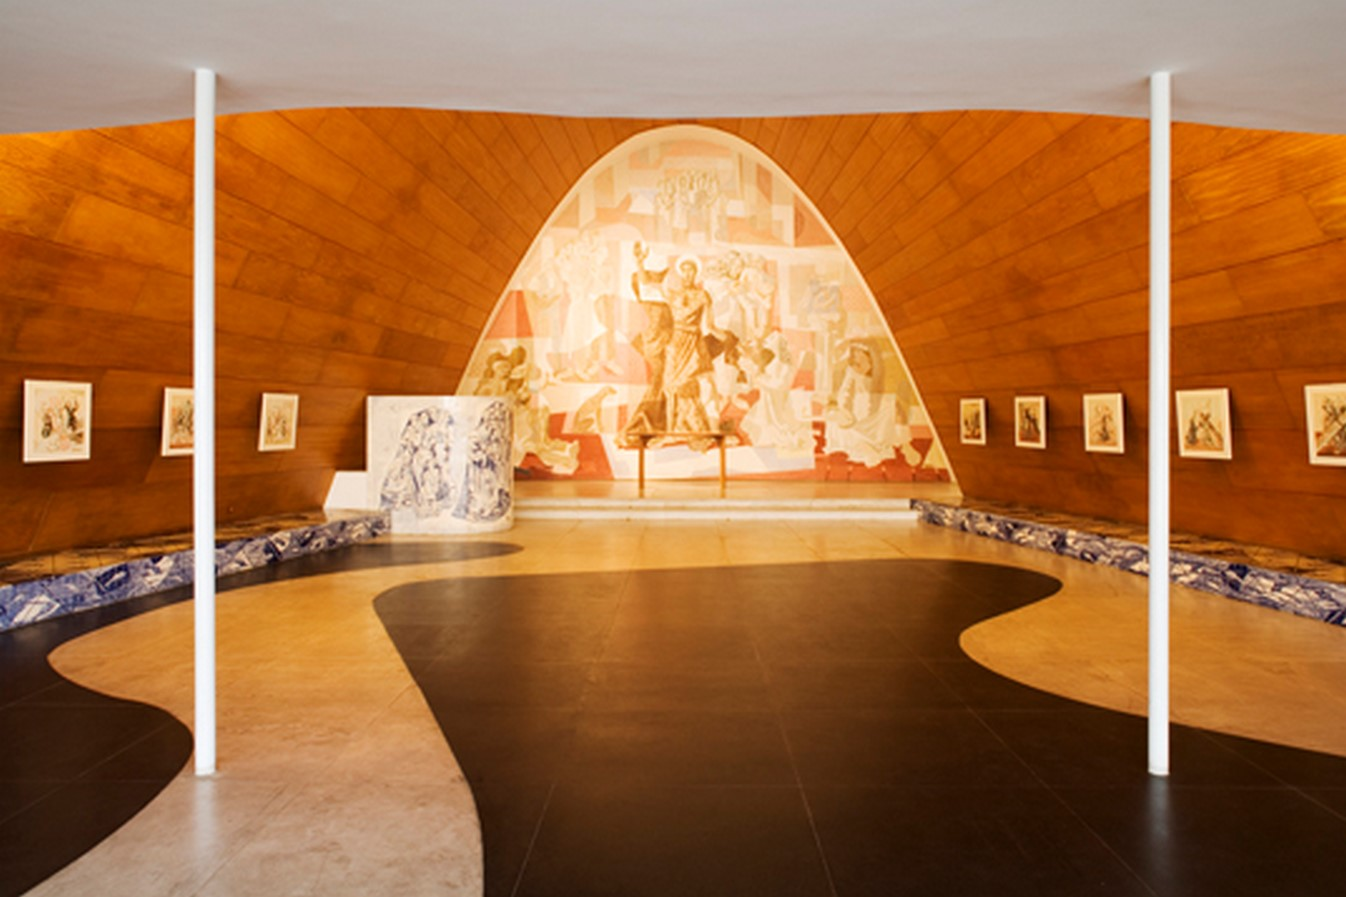 Church of Saint Francis of Assisi by Oscar Niemeyer: A Scandal in city's conservative culture - Sheet5